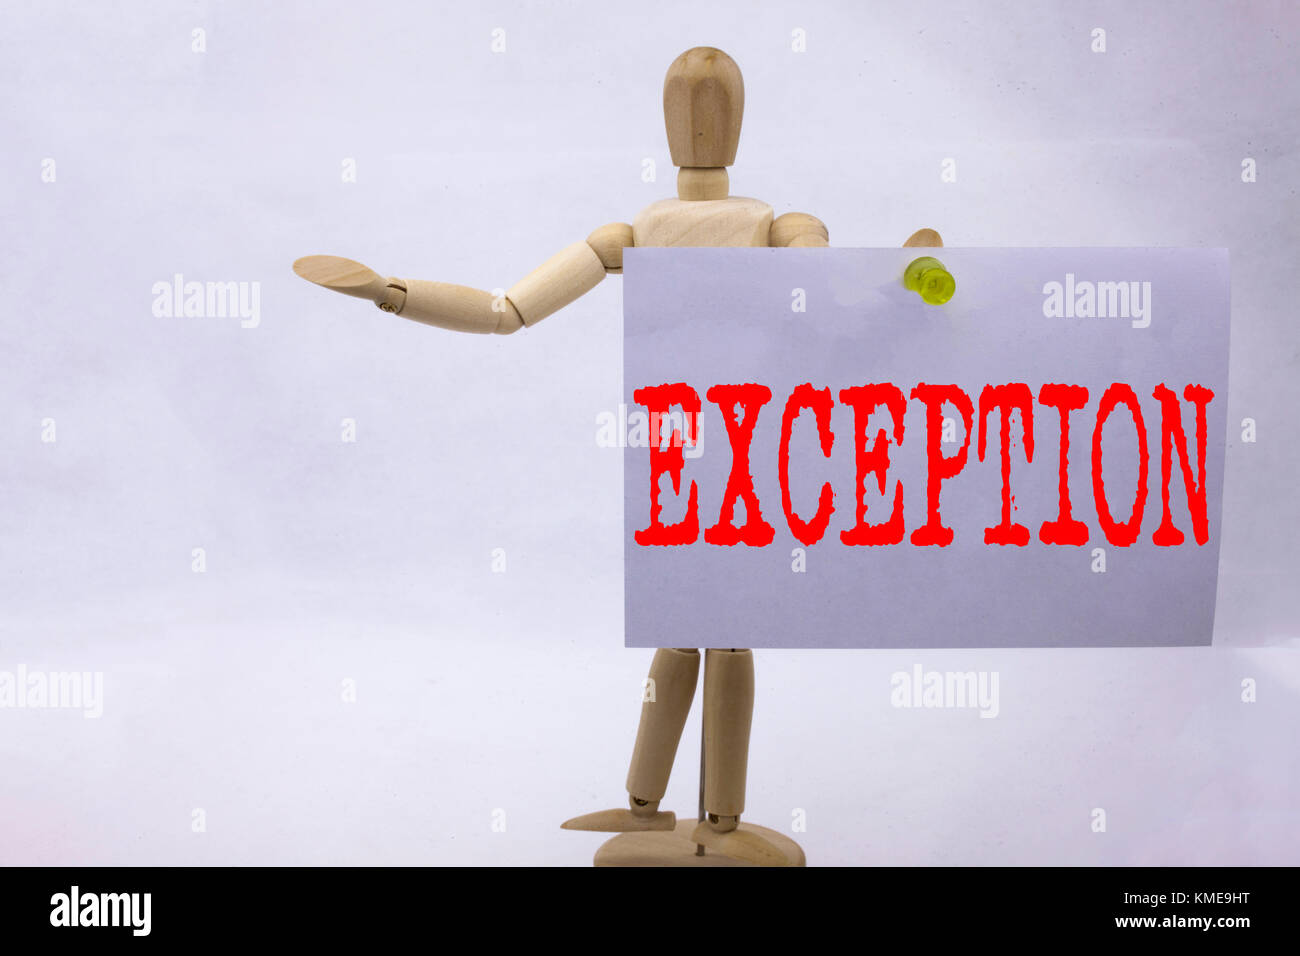 Conceptual hand writing text caption inspiration showing Exception Business concept for Exceptional Exception Management, - Stock Image